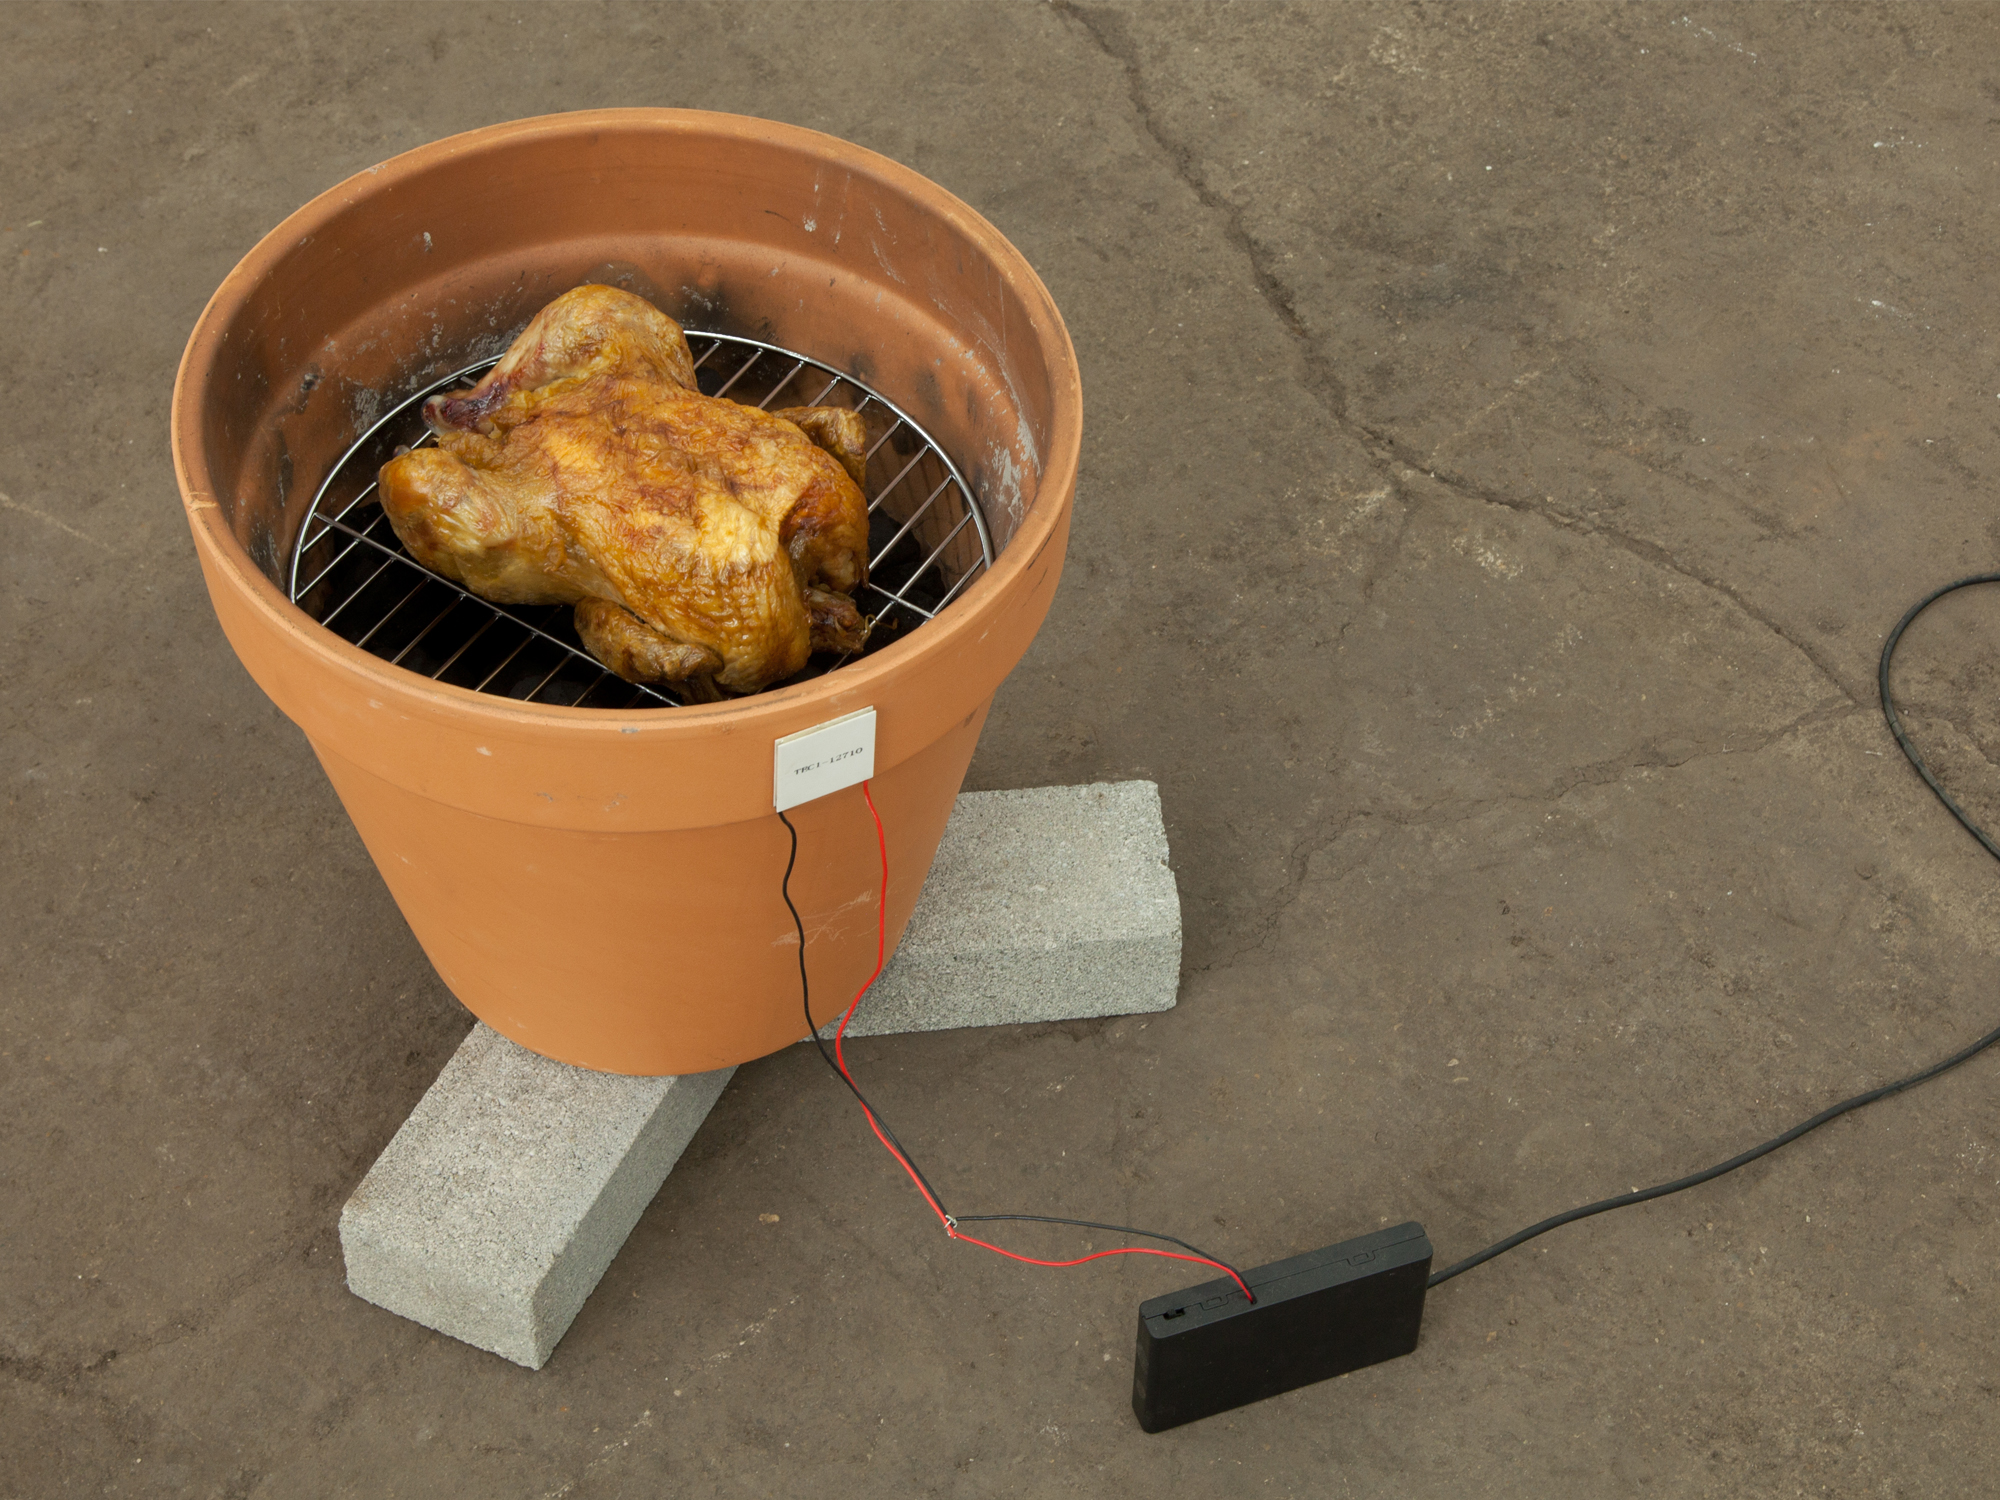 """Meat Smoker OR Pet Cremation Chamber and Thermoelectric Conversion Phone Charger from Meat Heat    14""""x 14""""x 12""""   Terra Cotta Pot, Aluminum Grill, Heat Converter"""